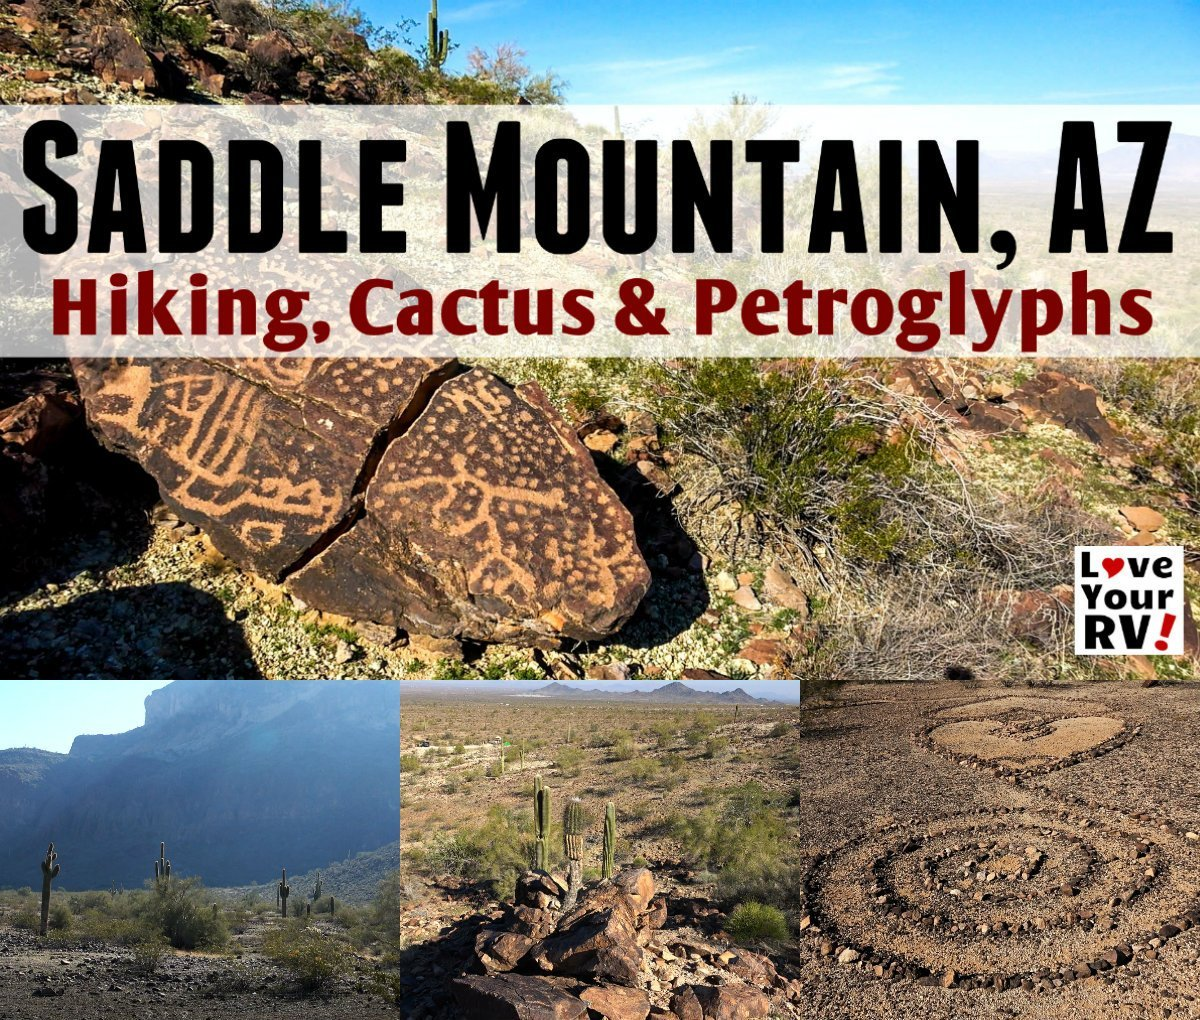 Morning hike in the Saddle Mountain BLM Dispersed camping area near Tonopah Arizona - https://www.loveyourrv.com/morning-hike-saddle-mountain-az-petroglyphs-cactus-and-sweeping-views/